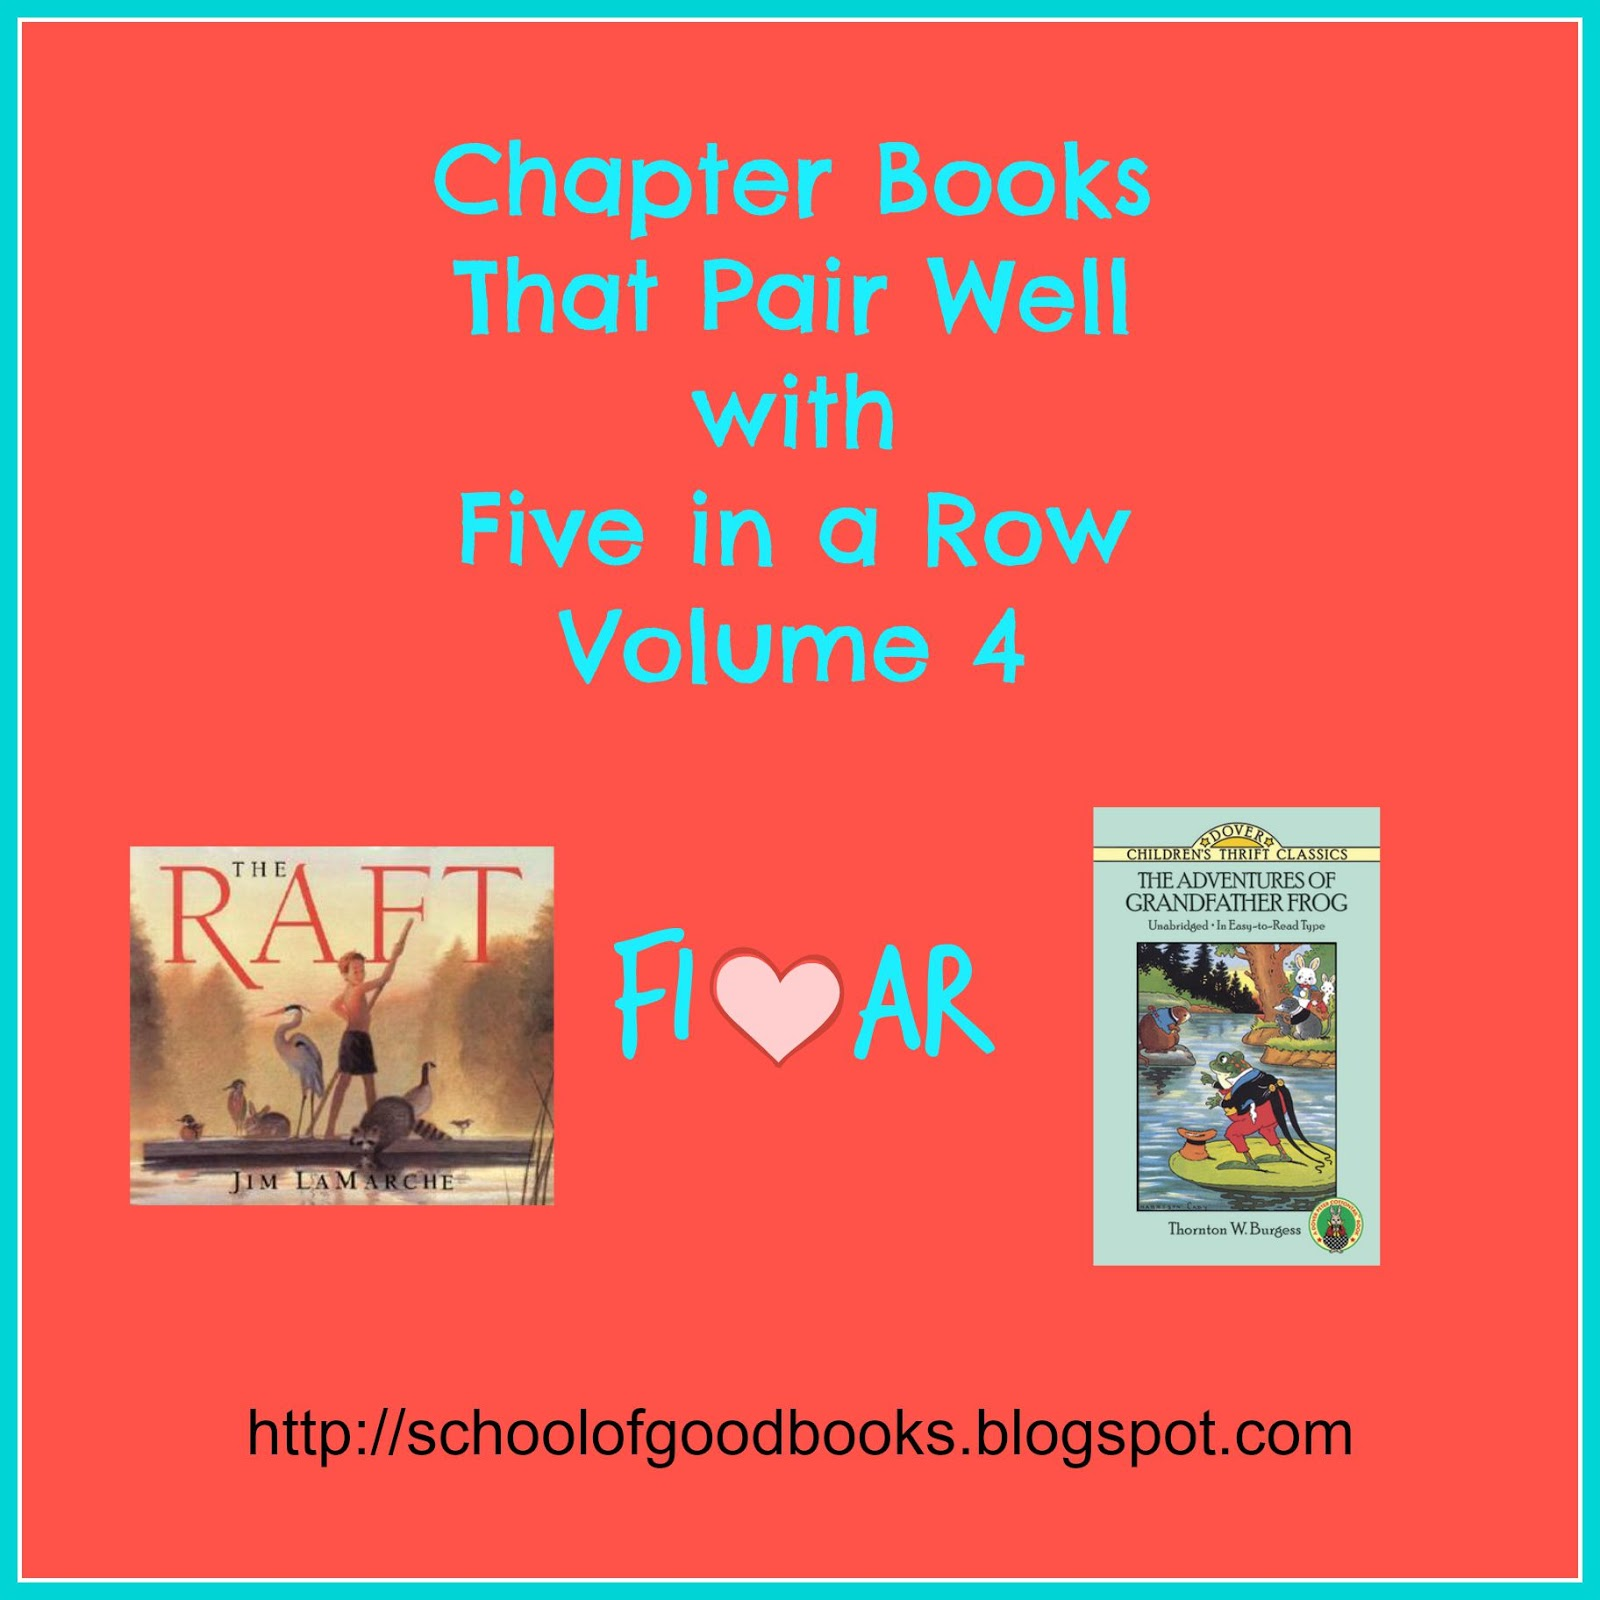 How To Eat Fried Worms Written By Thomas Rockwell Laugh Out Laugh Books  Chapter Books That